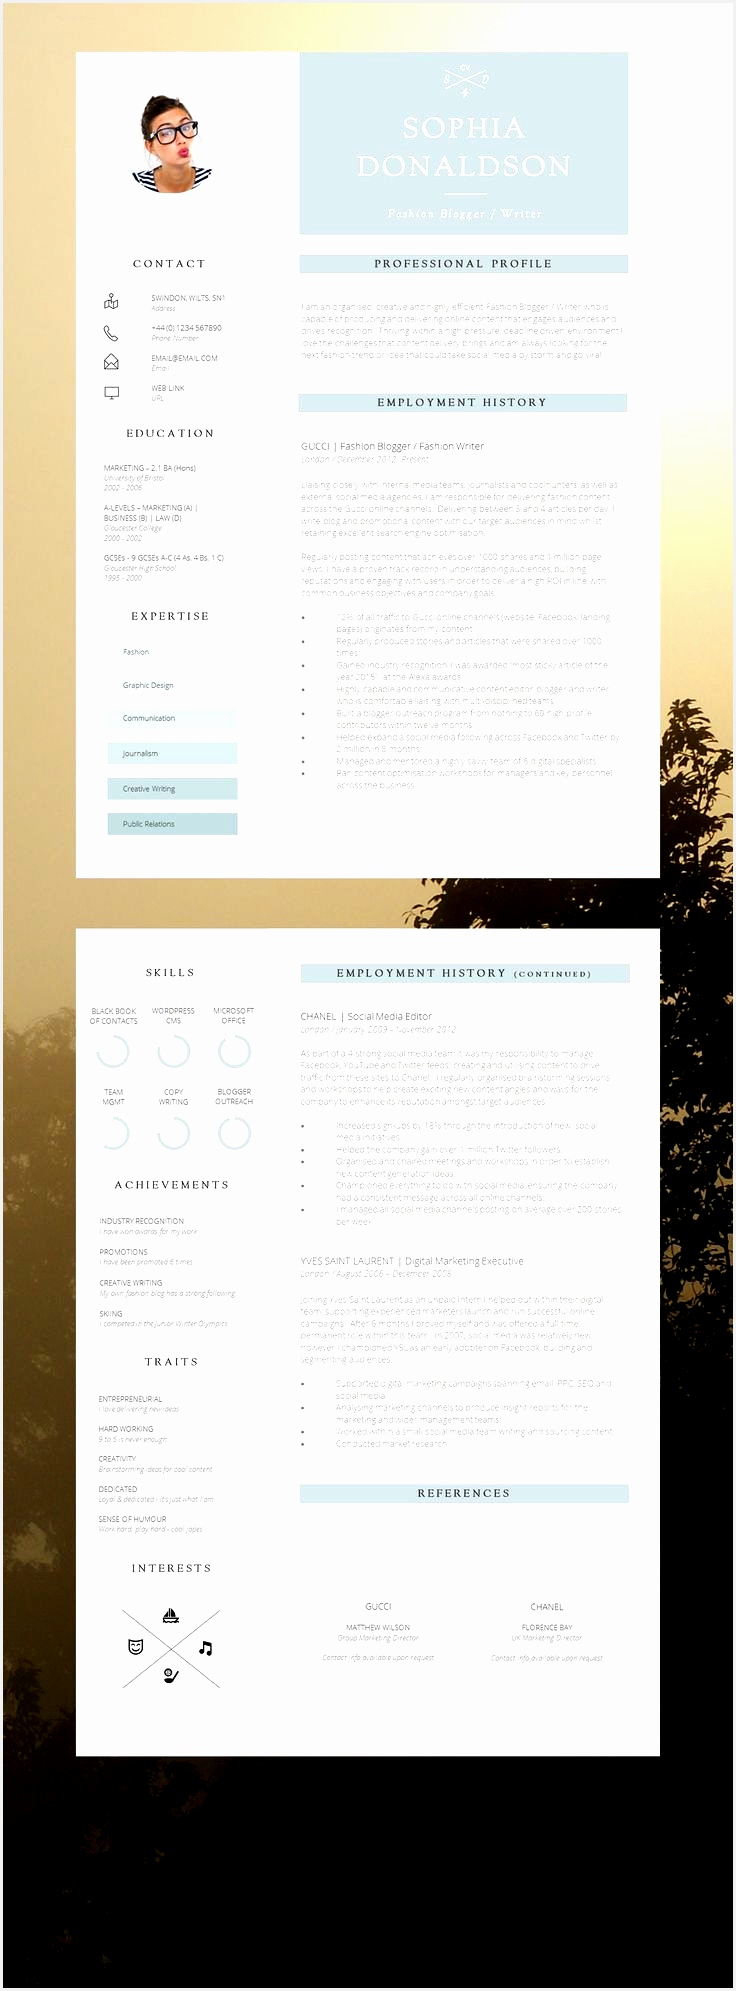 cv template by denisco and barker 2015